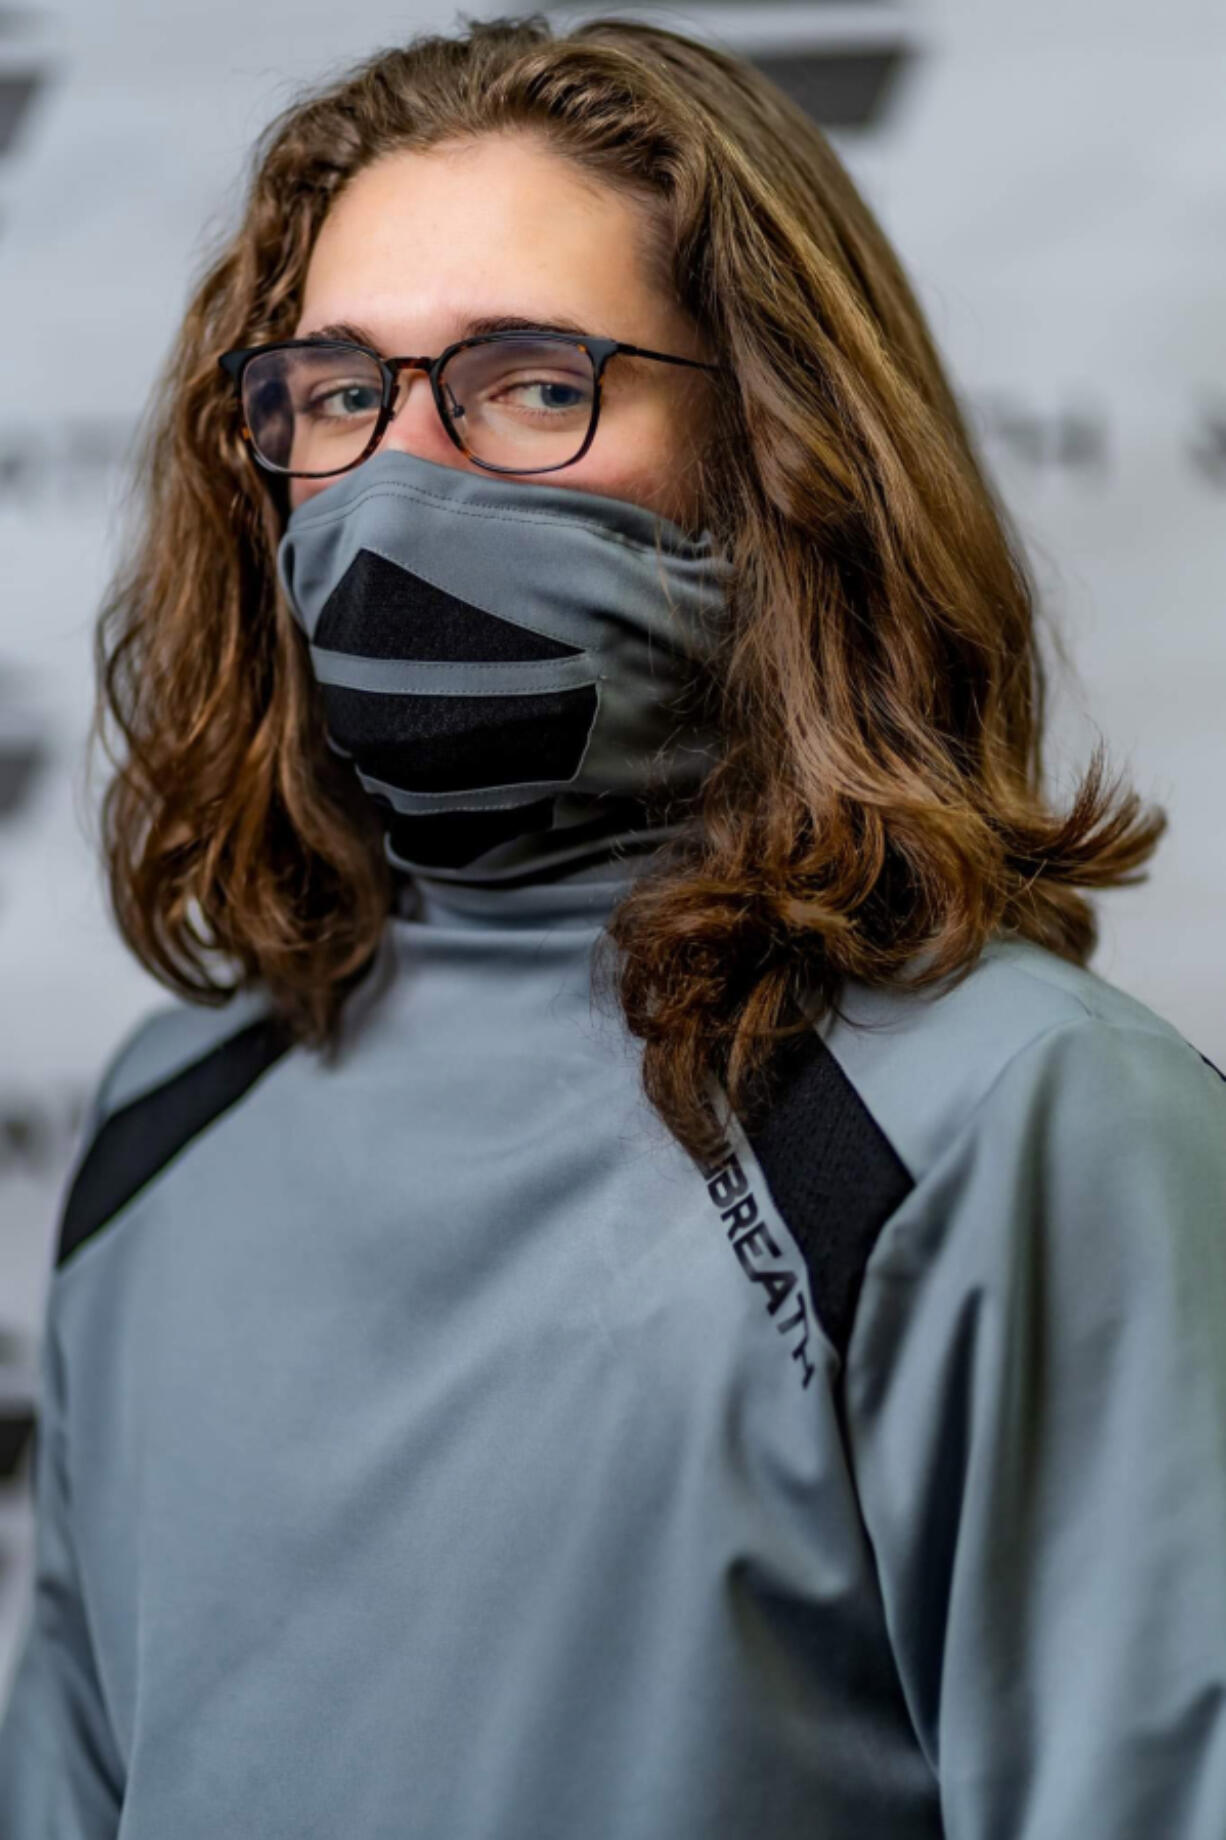 A Vancouver clothing company, NewBreath, created a shirt with a built-in mask. Although sales are currently only online, the company plans to do occasional pop-up shops and maybe open a brick-and-mortar store if there's a demand.